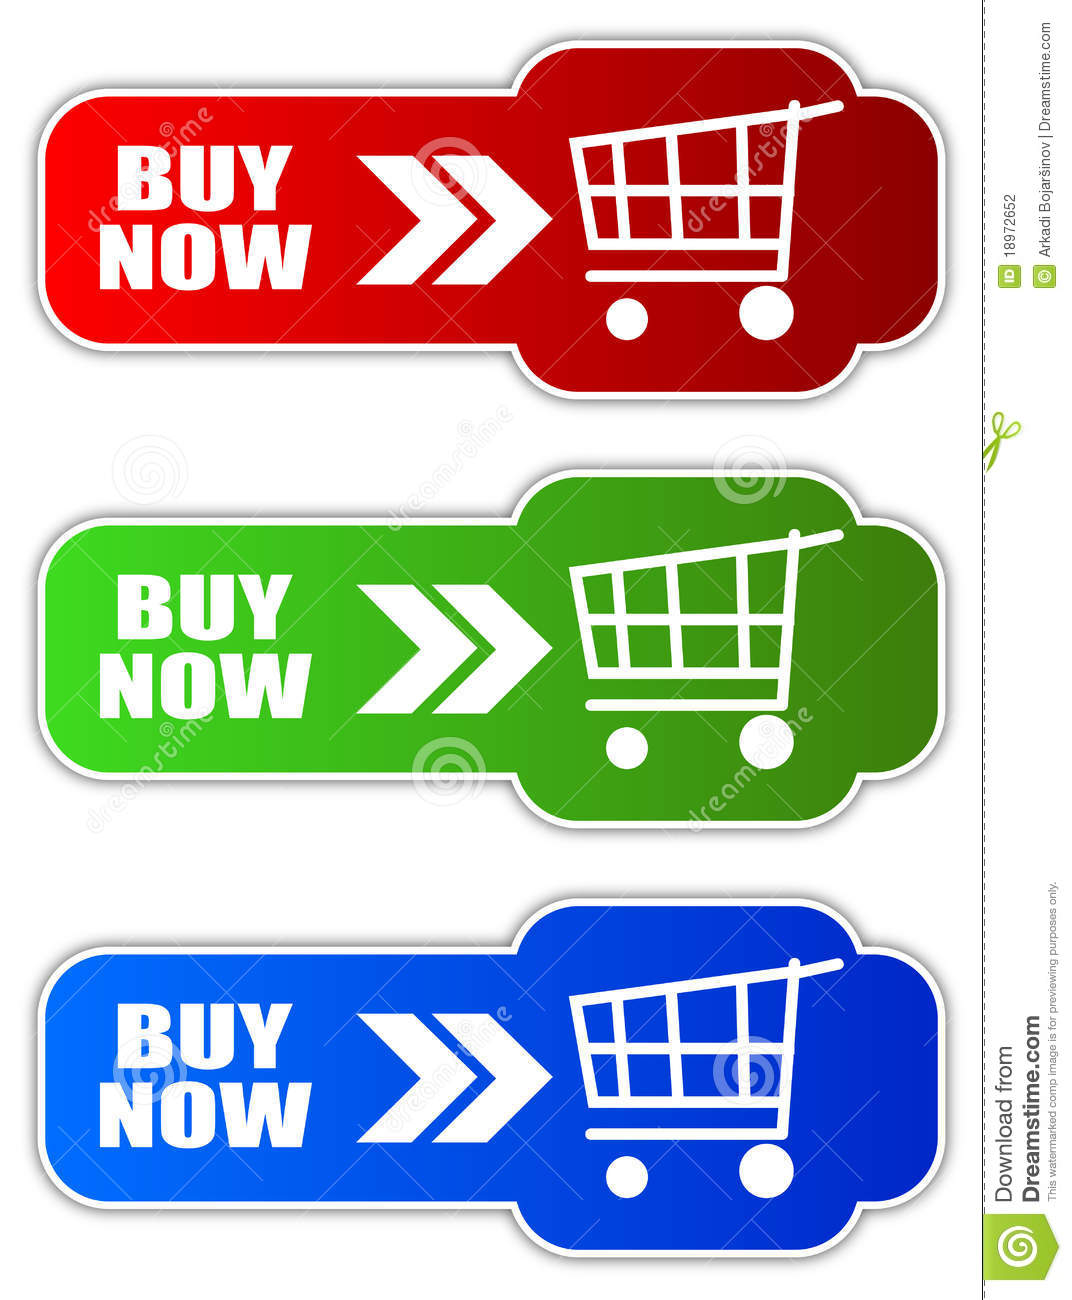 Buy It Now: Buy Now Button Stock Vector. Illustration Of Commerce